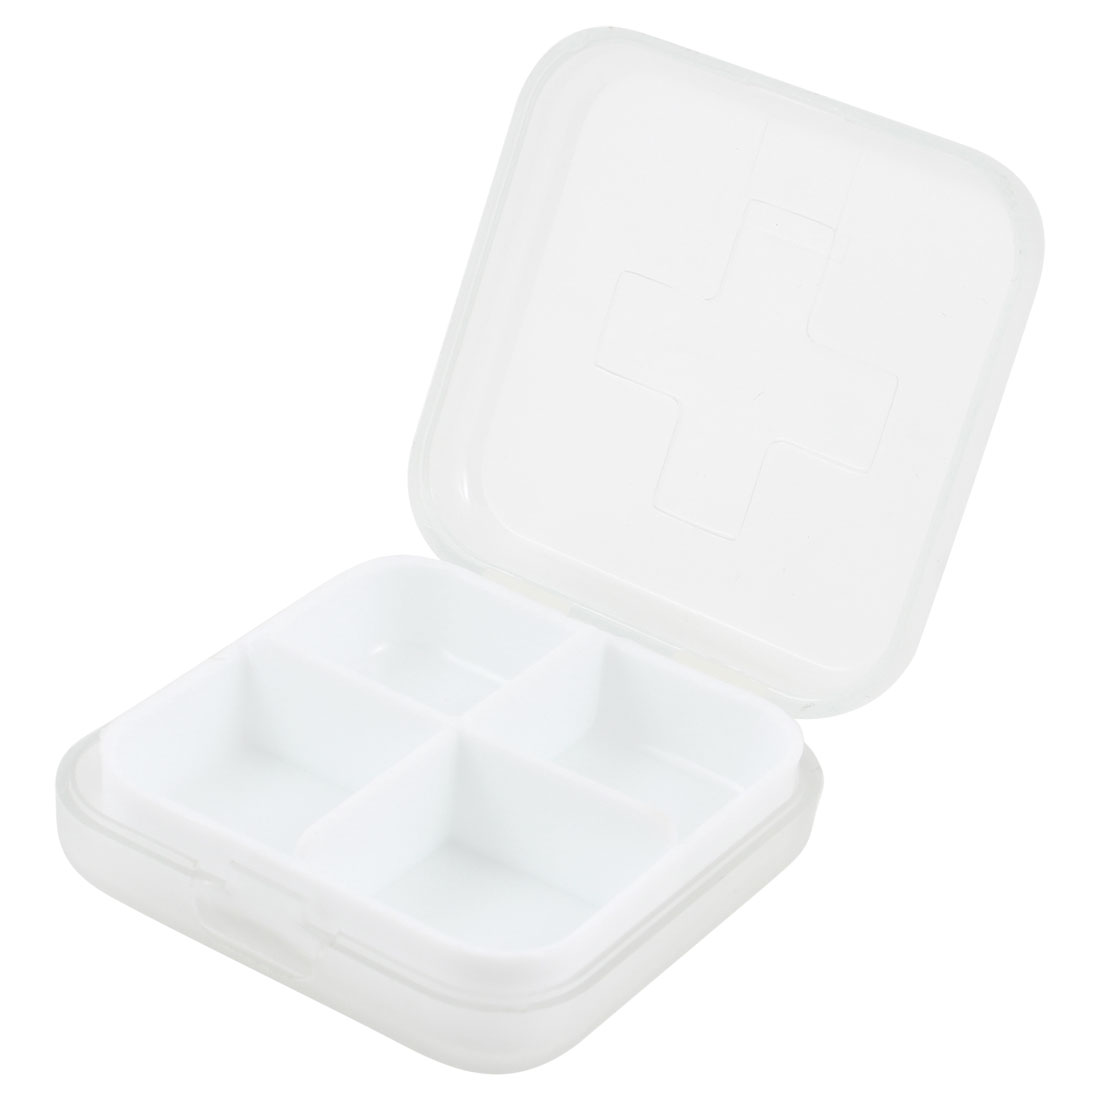 Square Shaped 4 Compartments Medicinal Pills Holder Clear